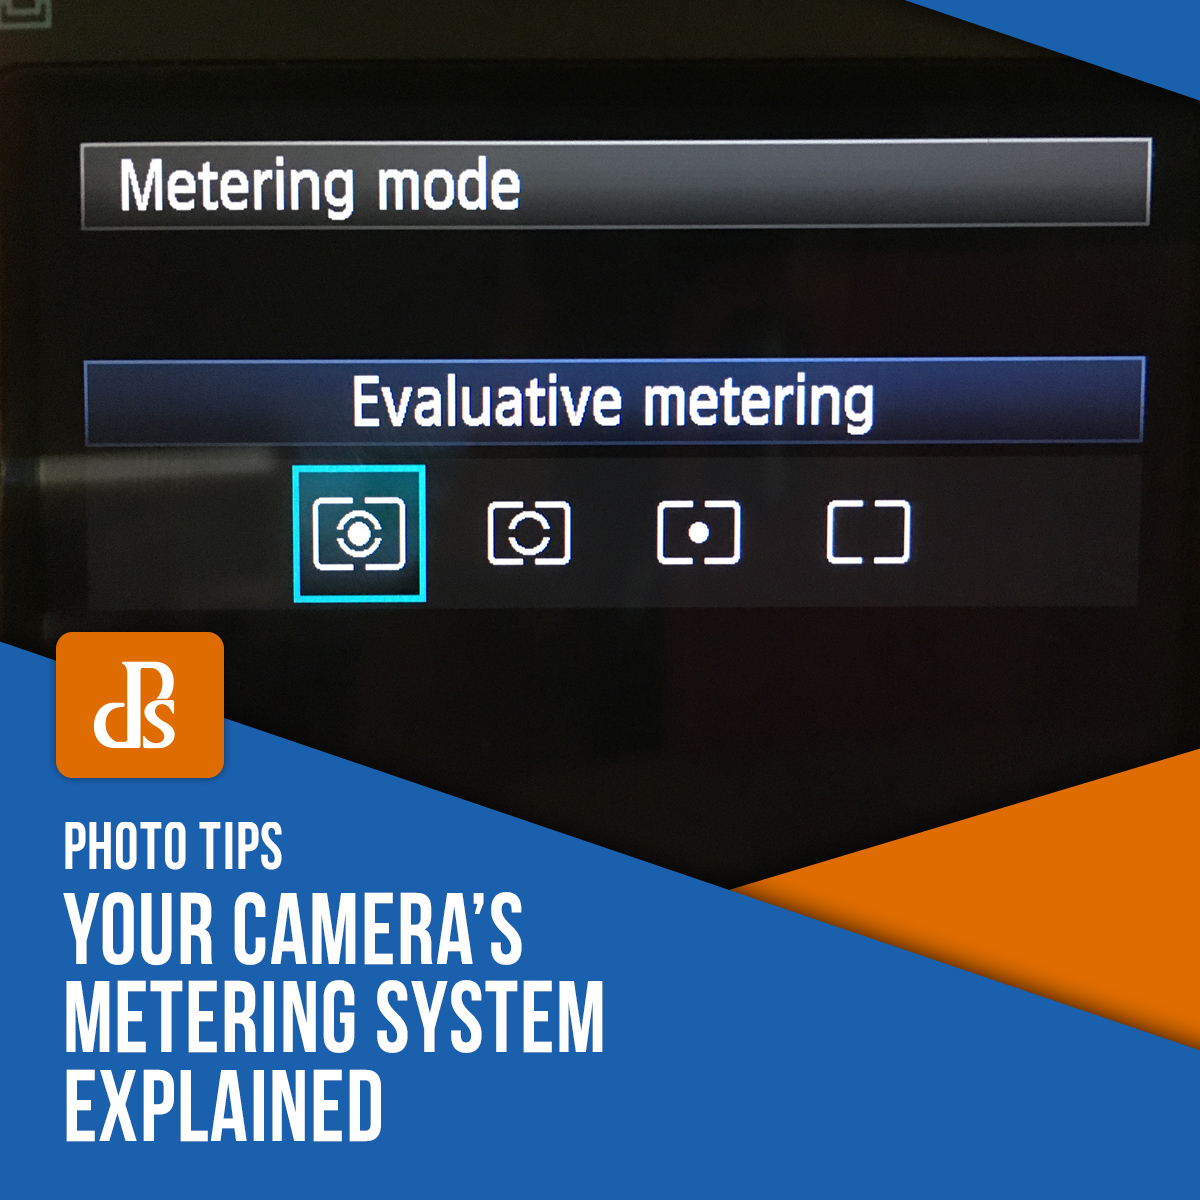 Your Camera's Metering System Explained